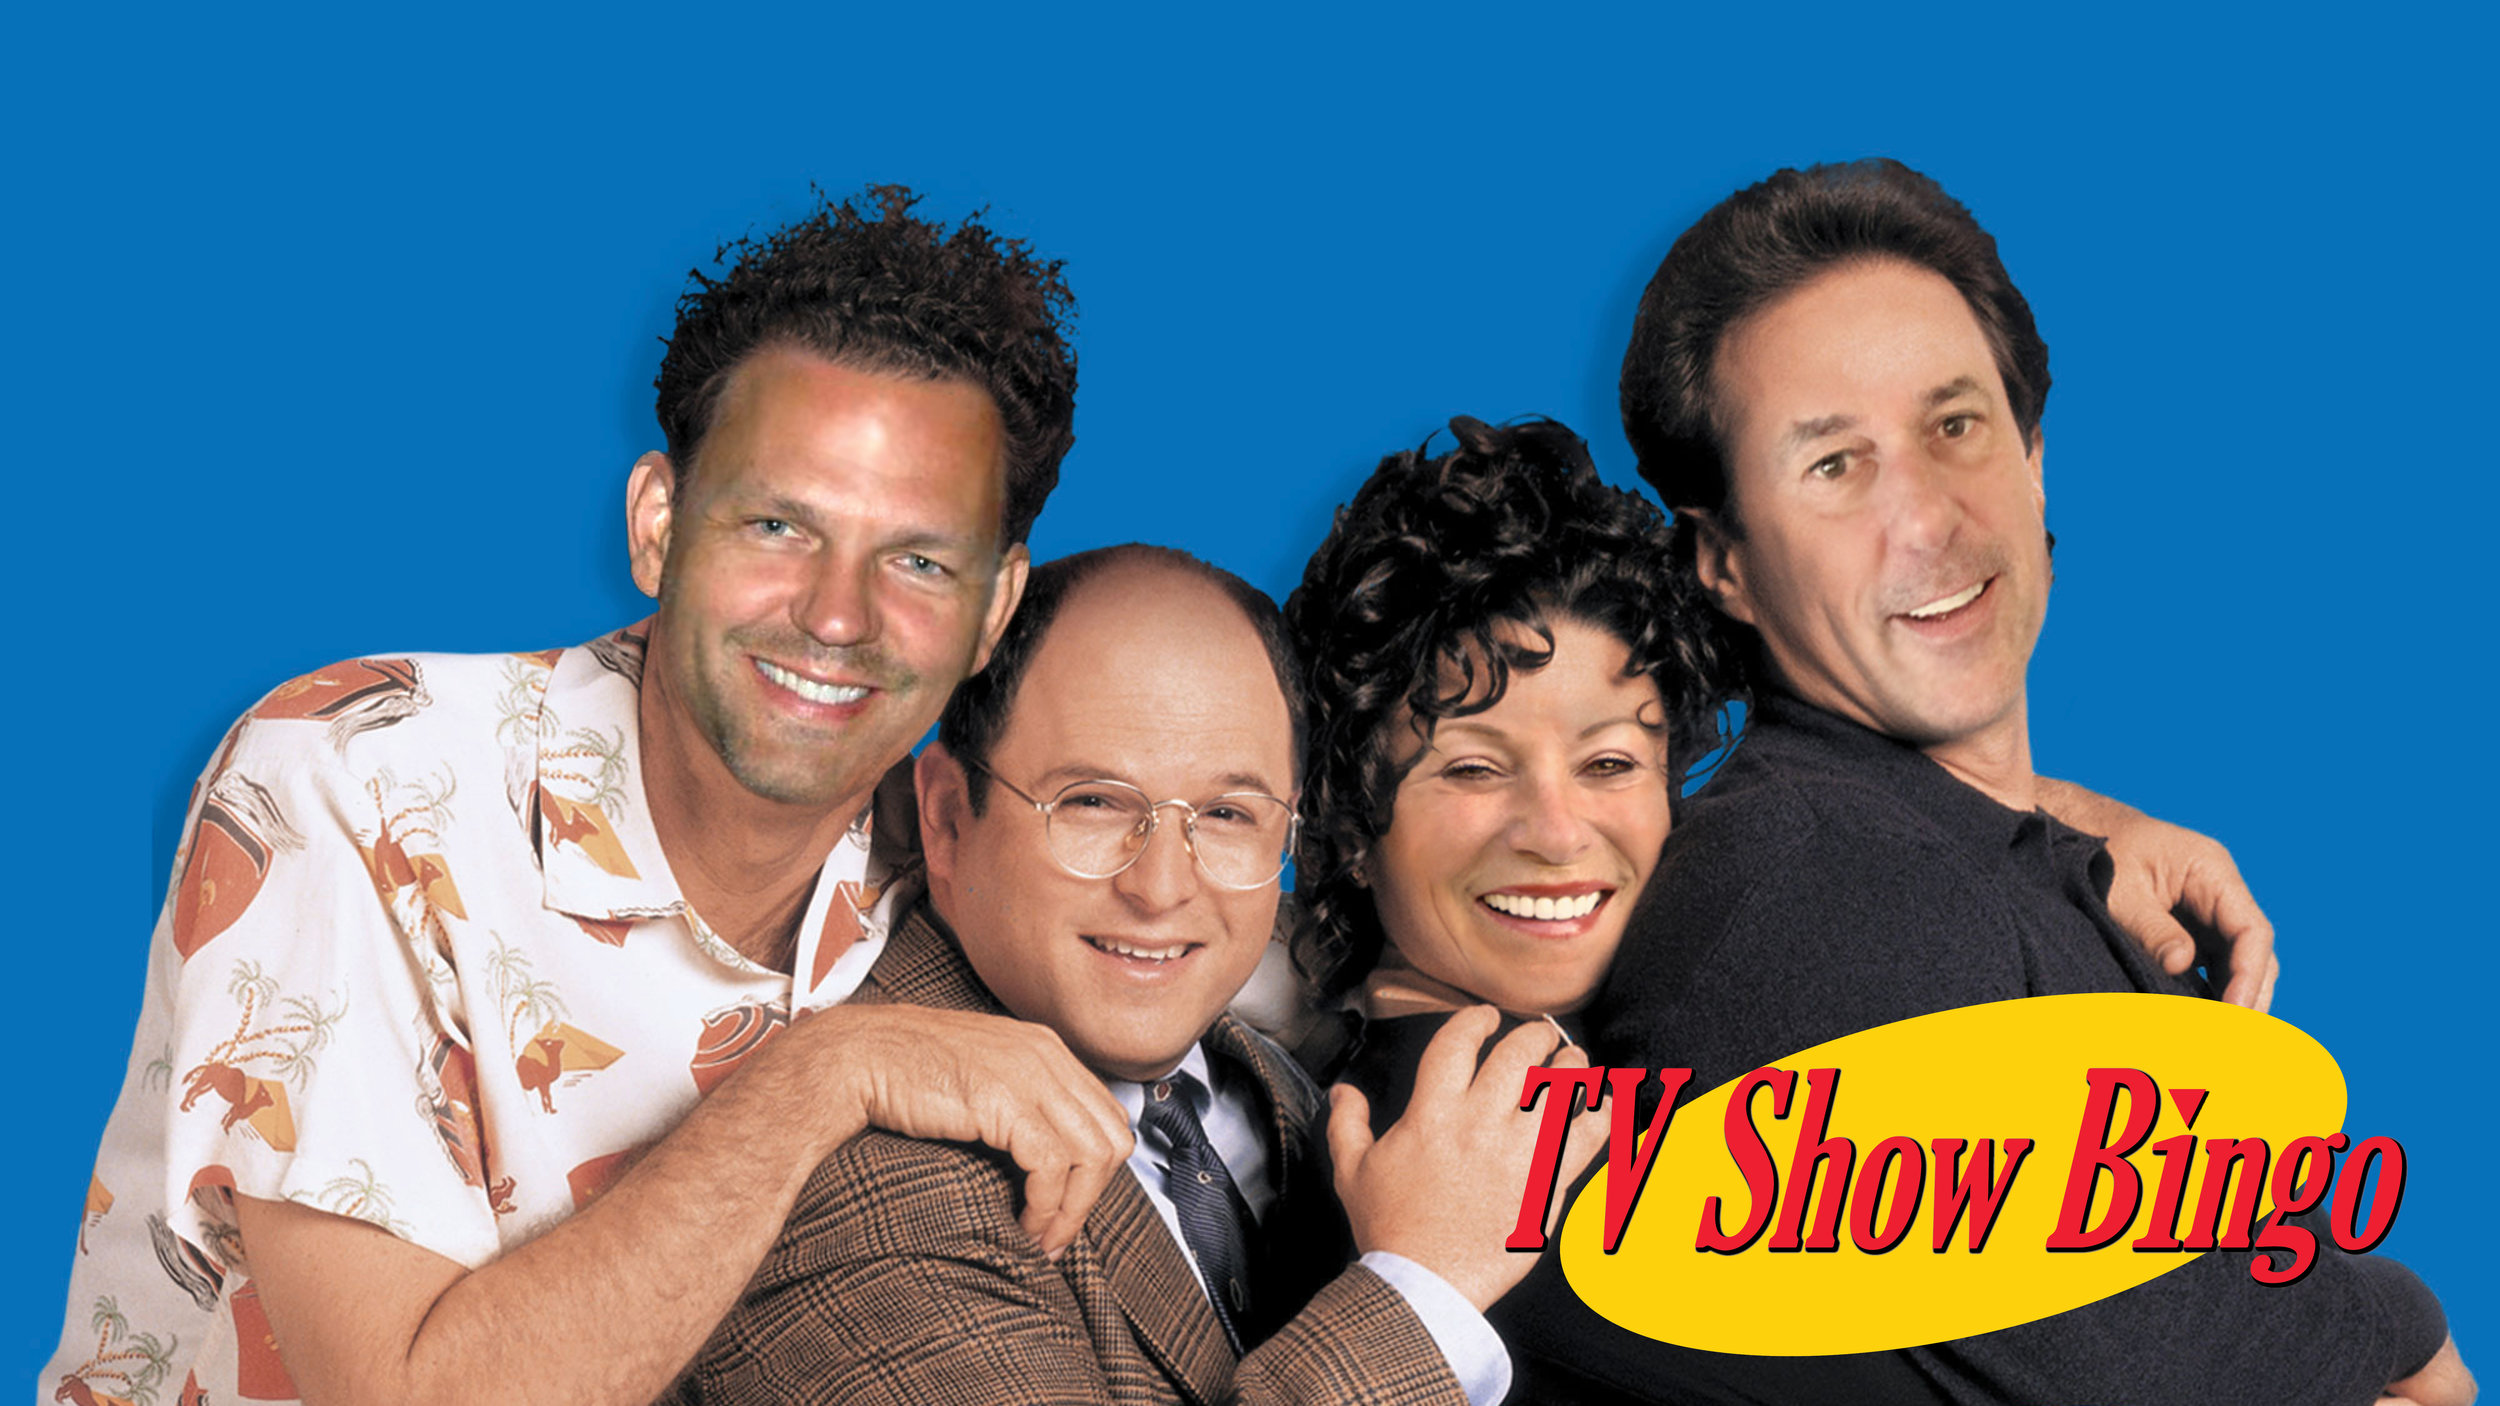 (From left to right) Matt Kramer-Cudney, George Costanza, Joan Benes-Lloyd and Dave Seinfeld-Armstrong pose as the Seinfeld cast for TV Show Bingo.jpg